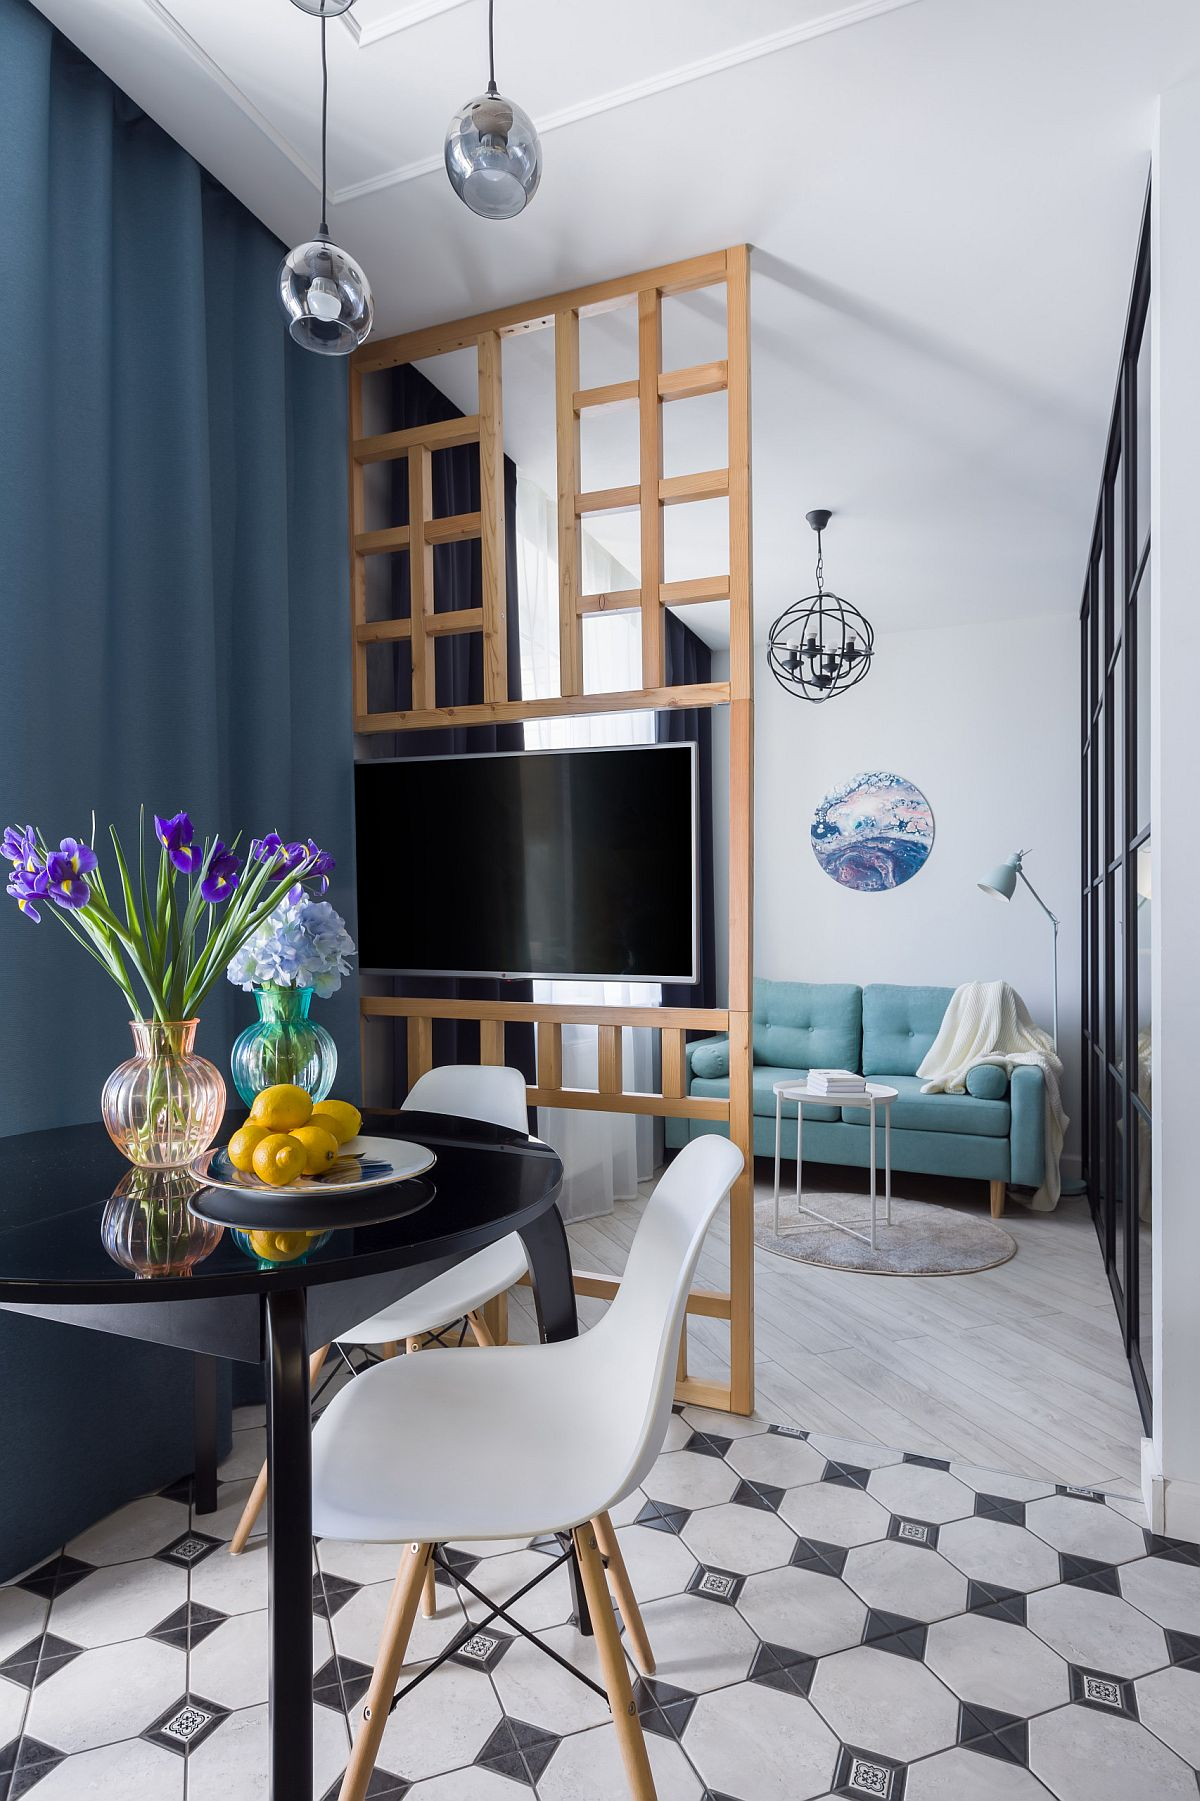 Tiny-dining-area-in-the-small-apartment-with-black-dining-table-and-a-couple-of-chairs-99316